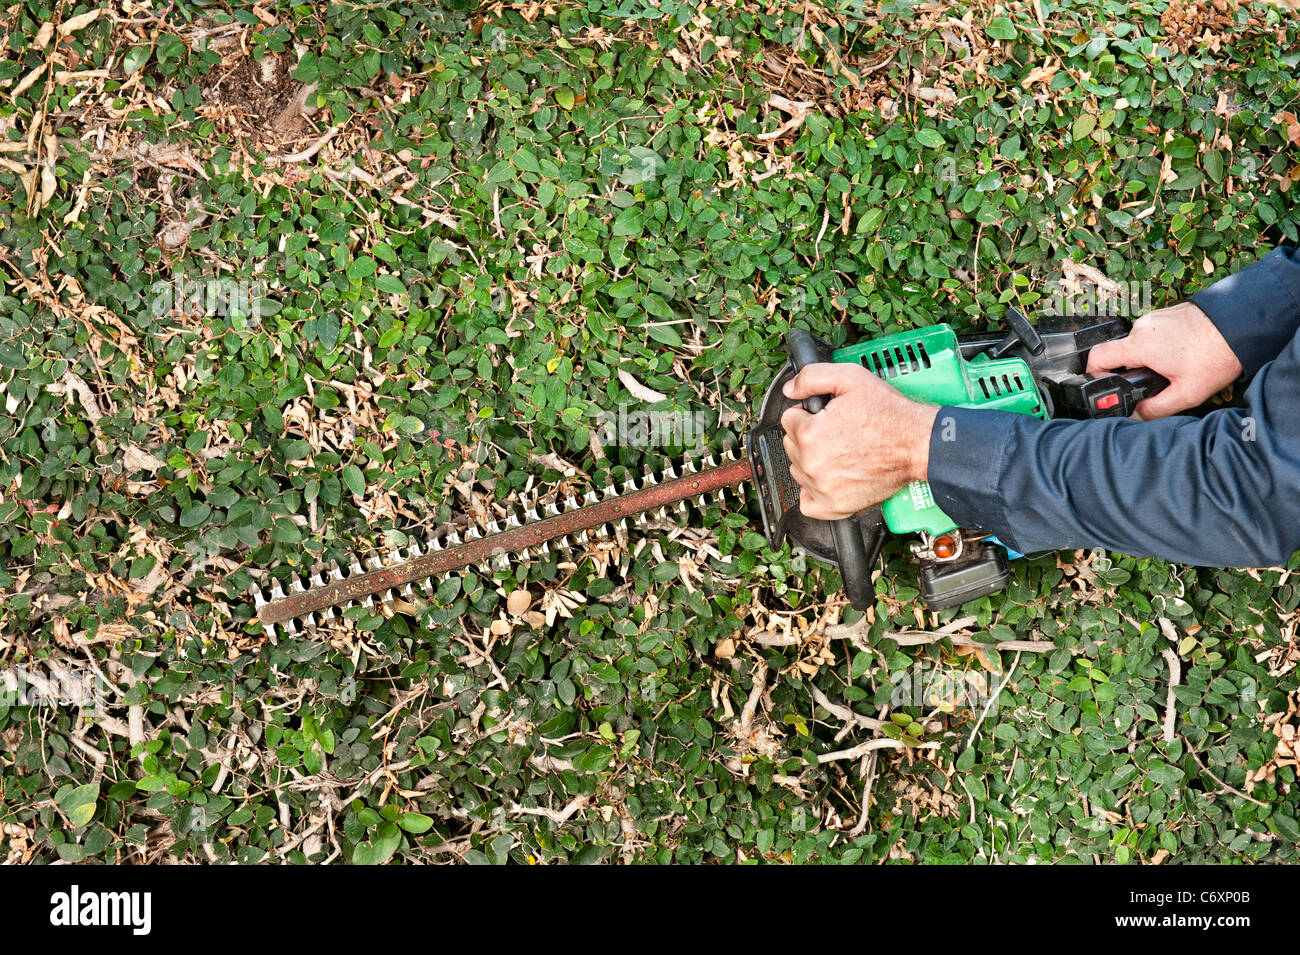 A man uses a gas powered hedge trimmer to trim vines - Stock Image